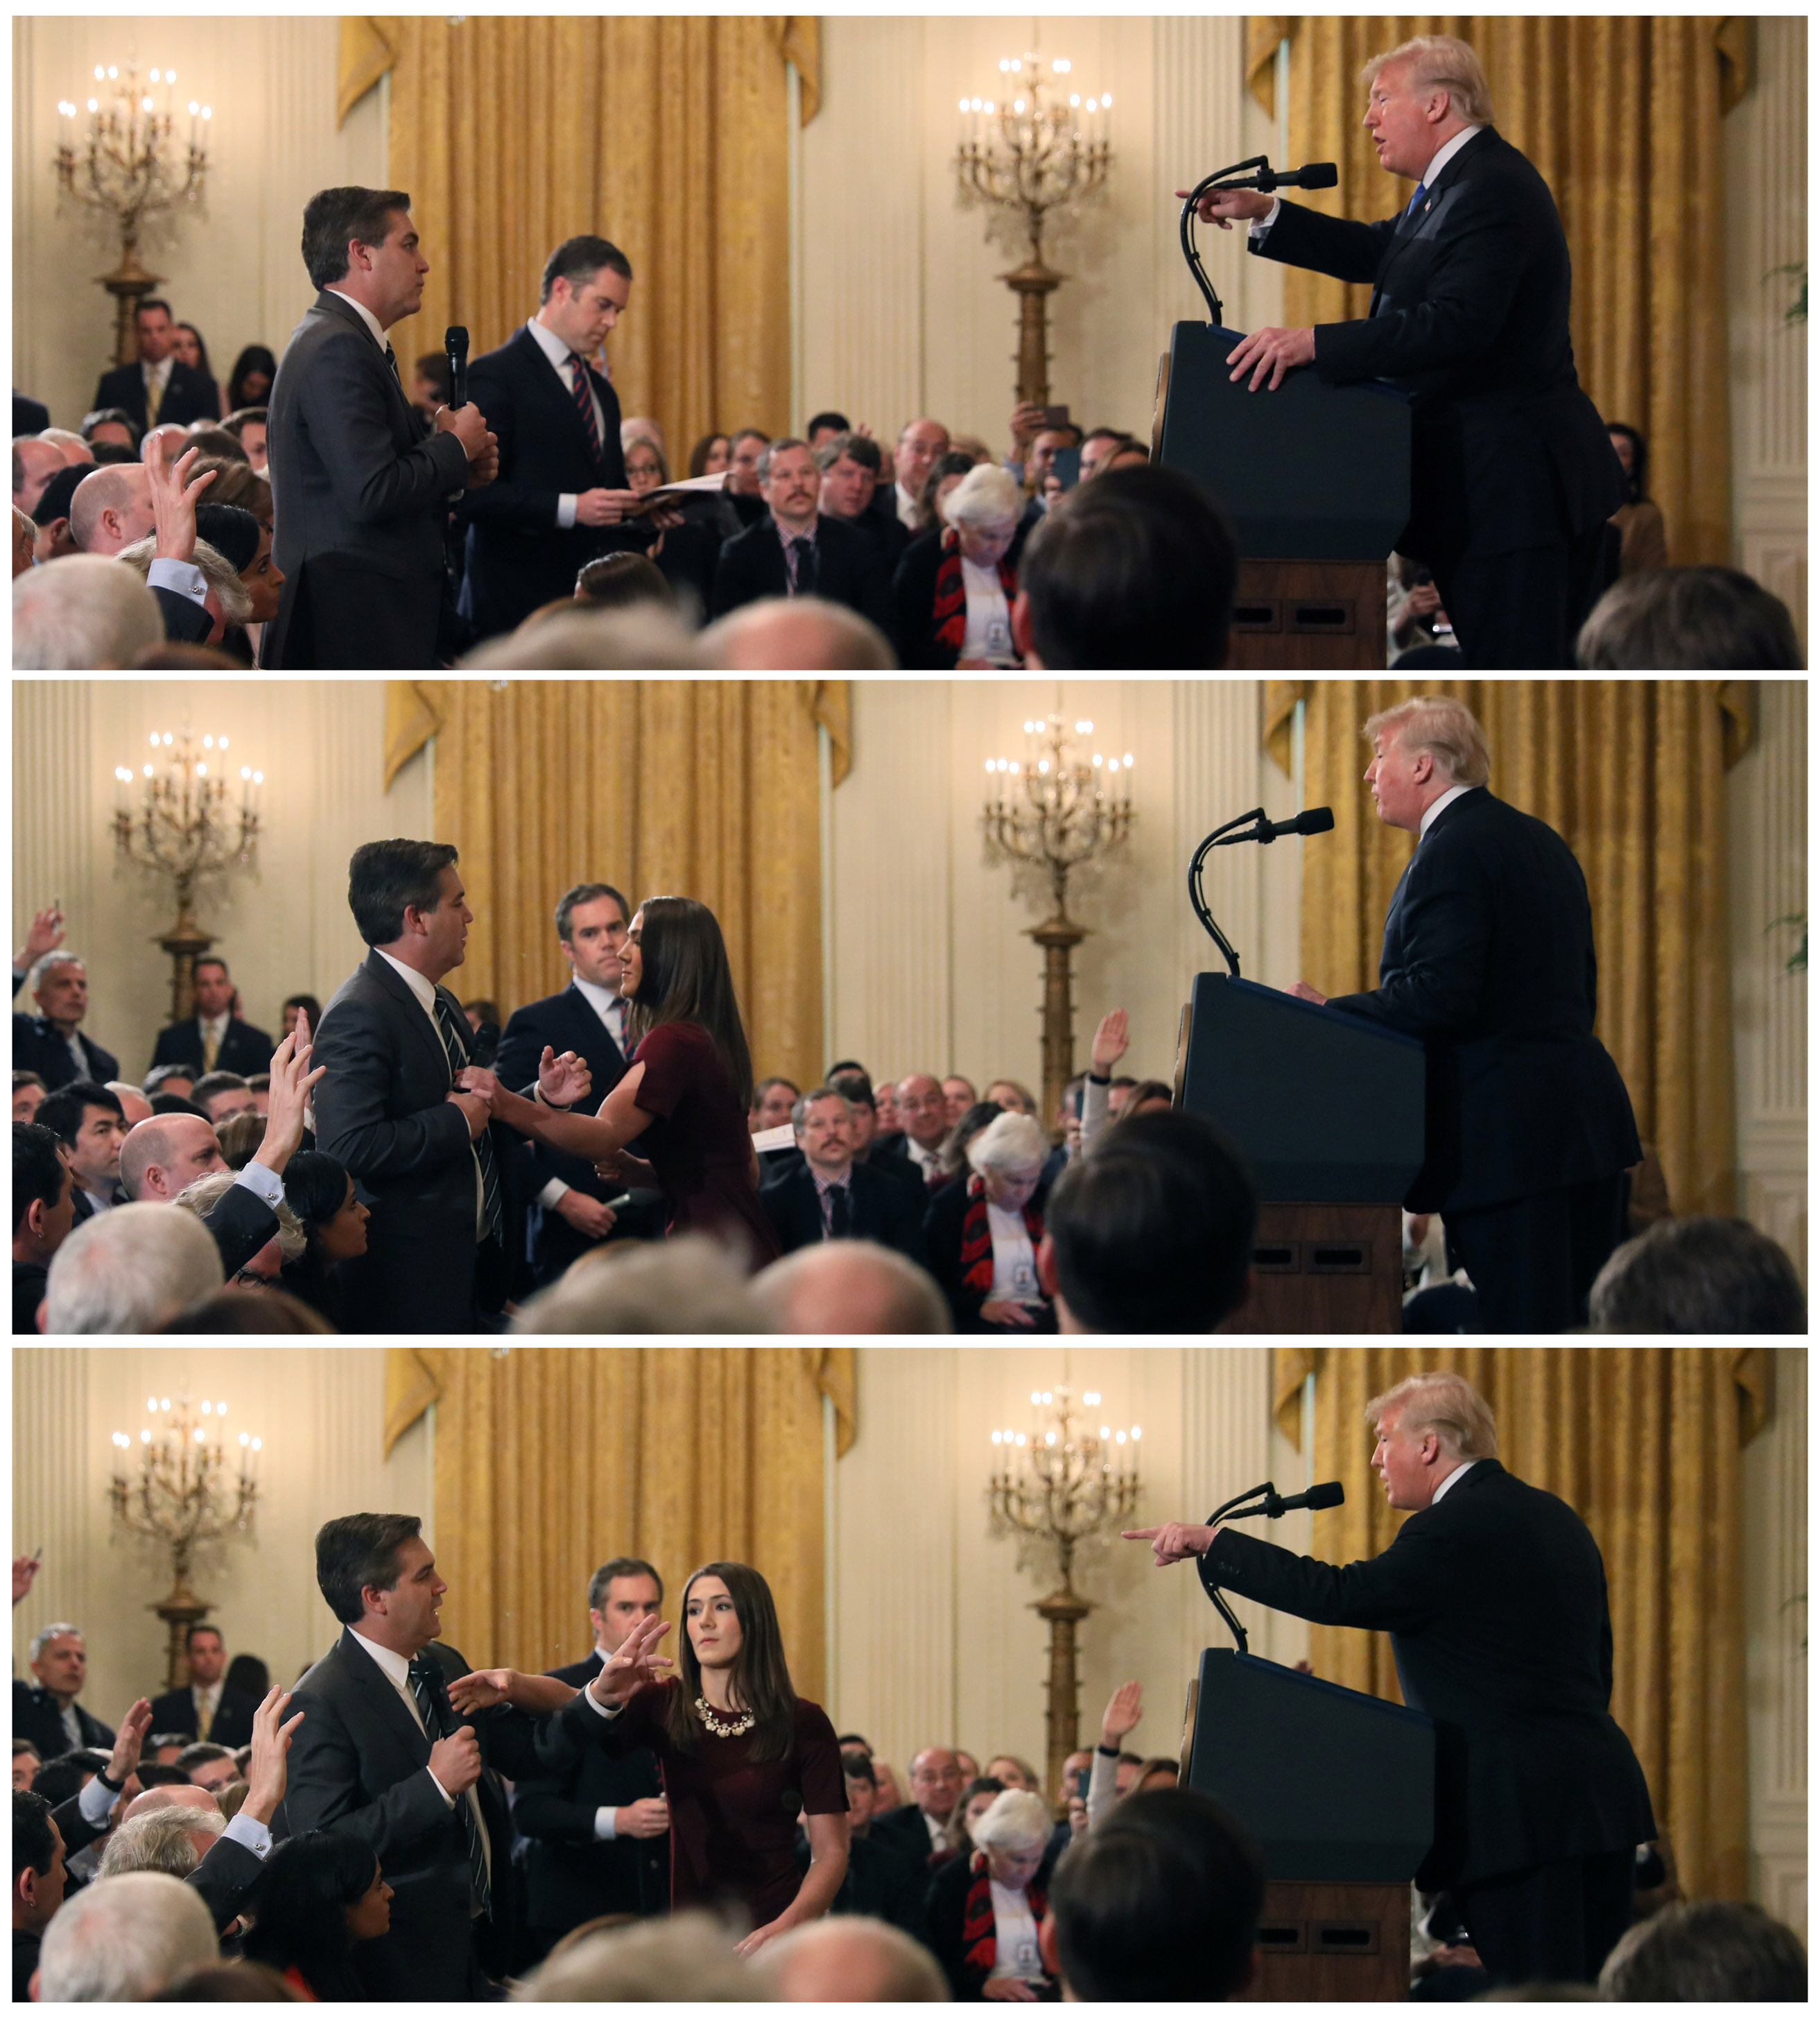 White House suspends credentials for CNN's Jim Acosta